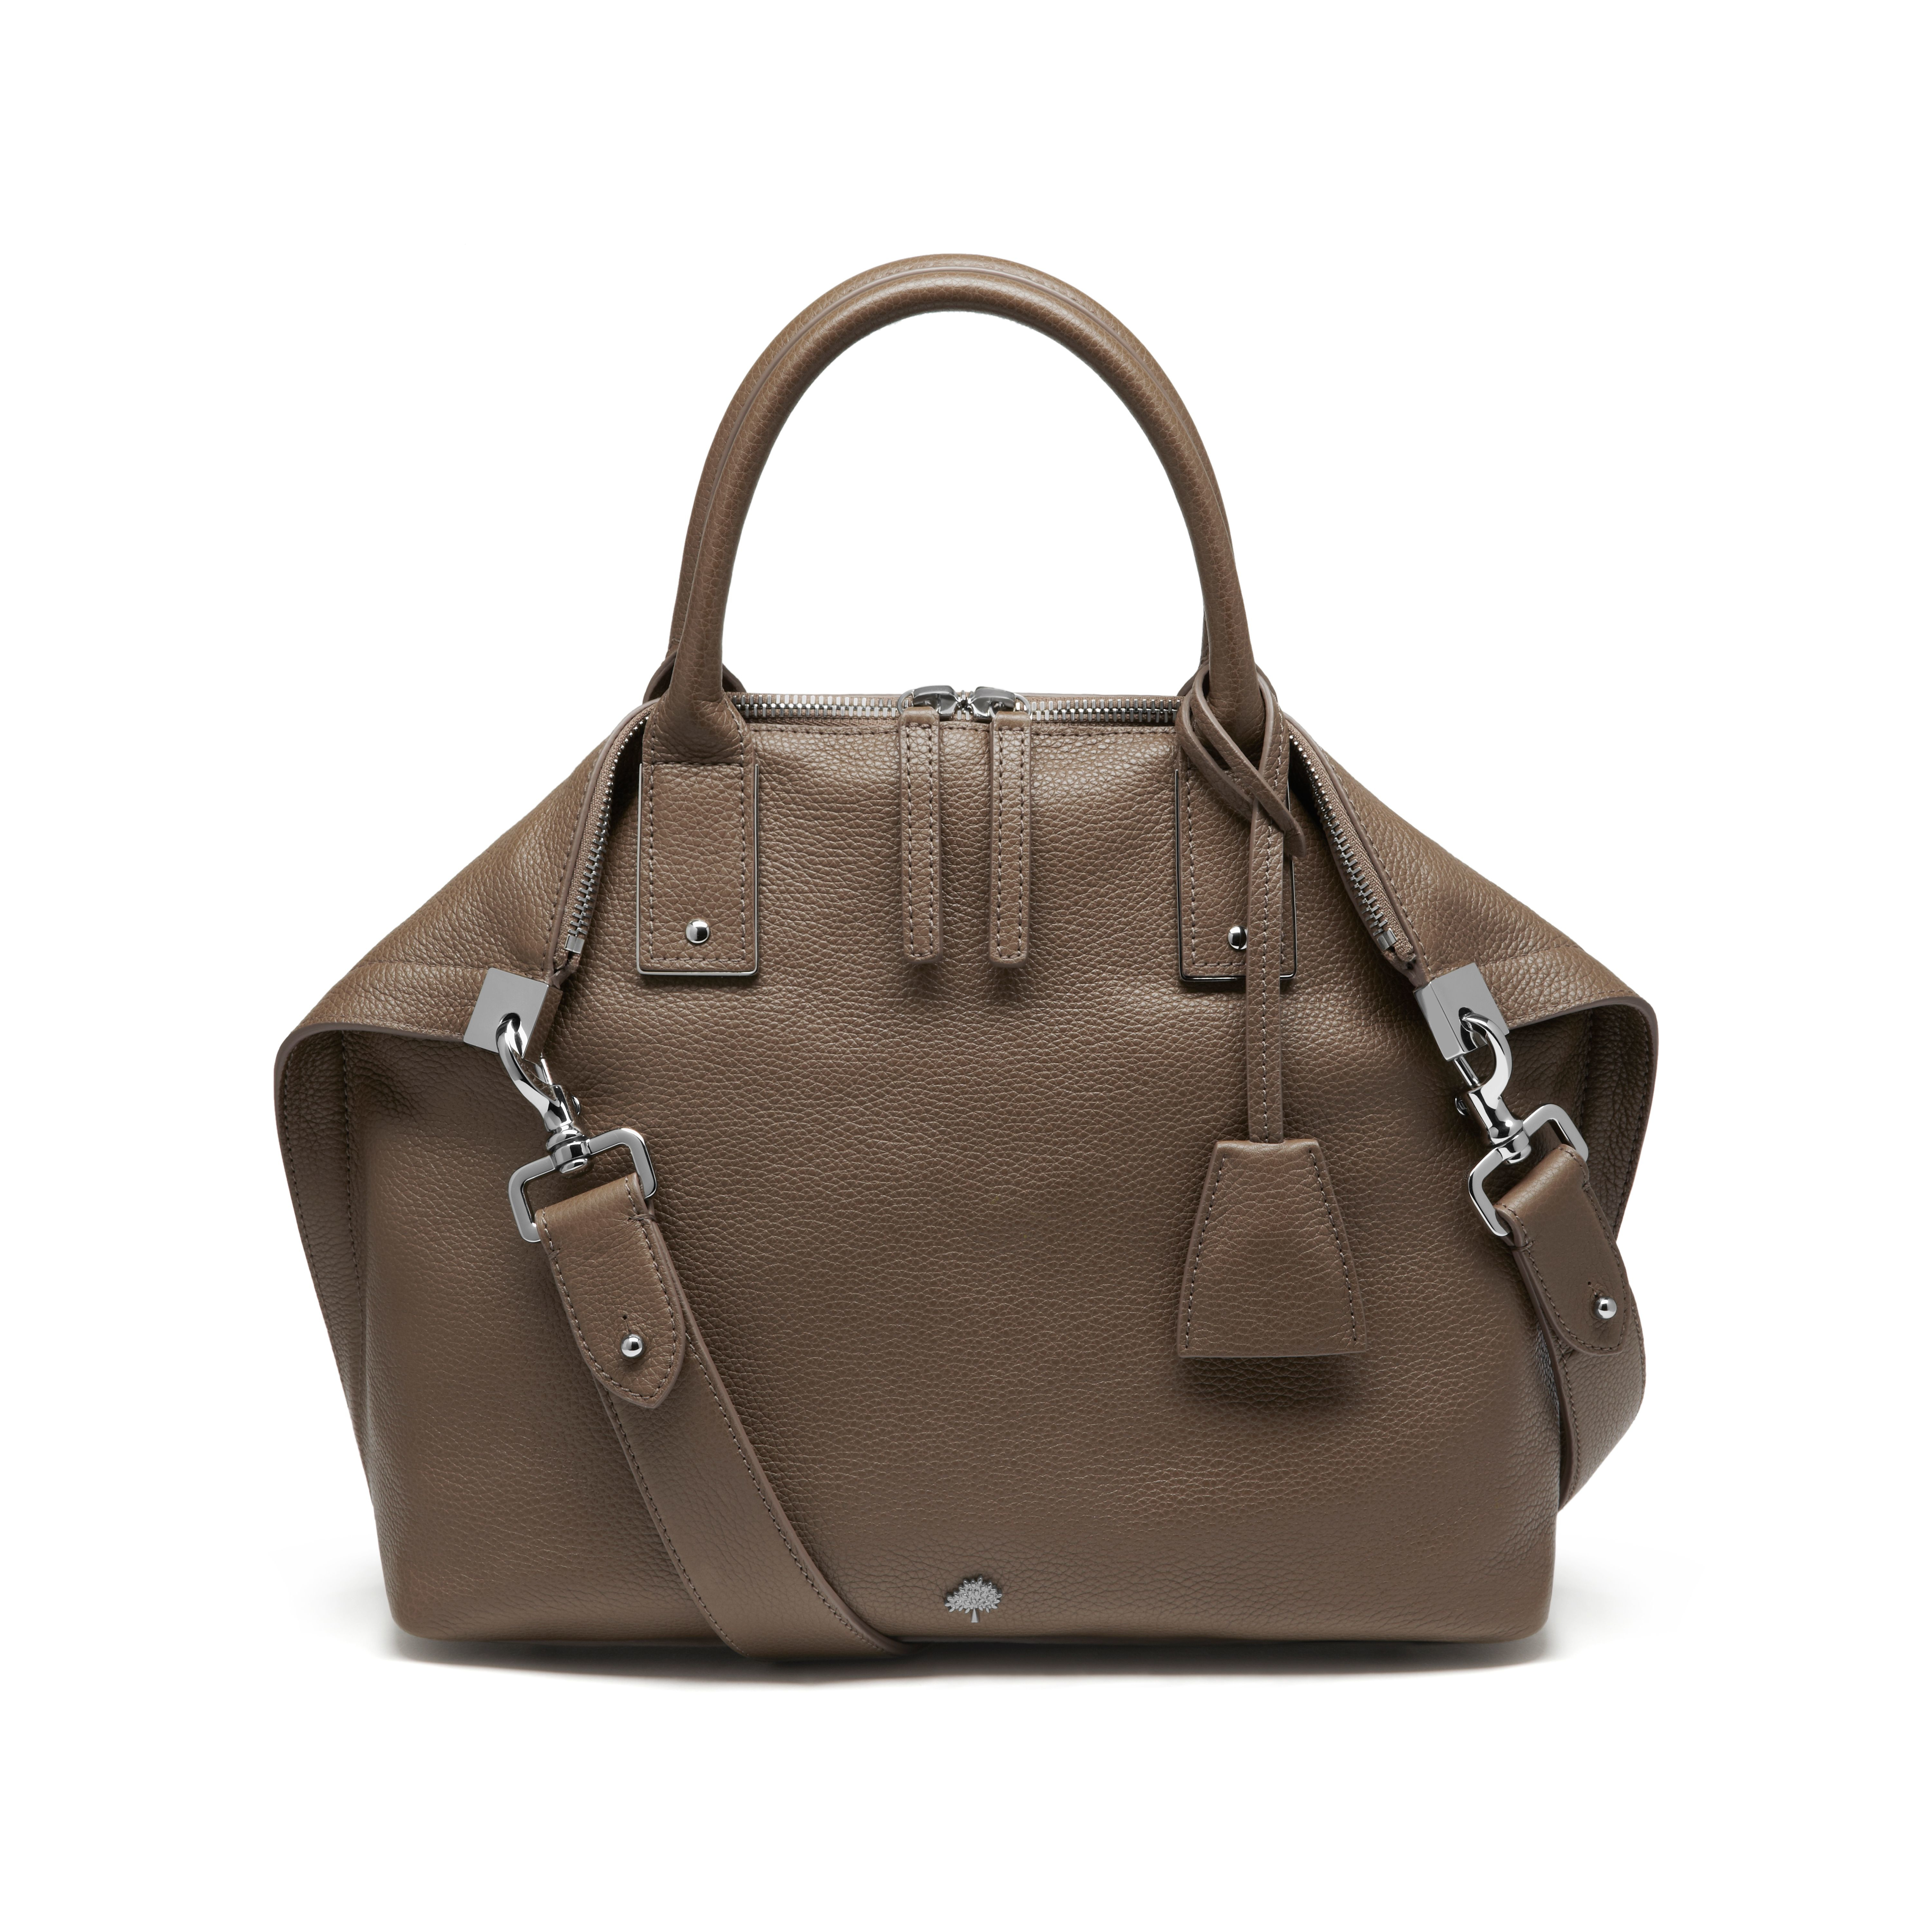 Mulberry Small Alice Zipped Tote in Brown - Lyst 5d1e615ef0f08